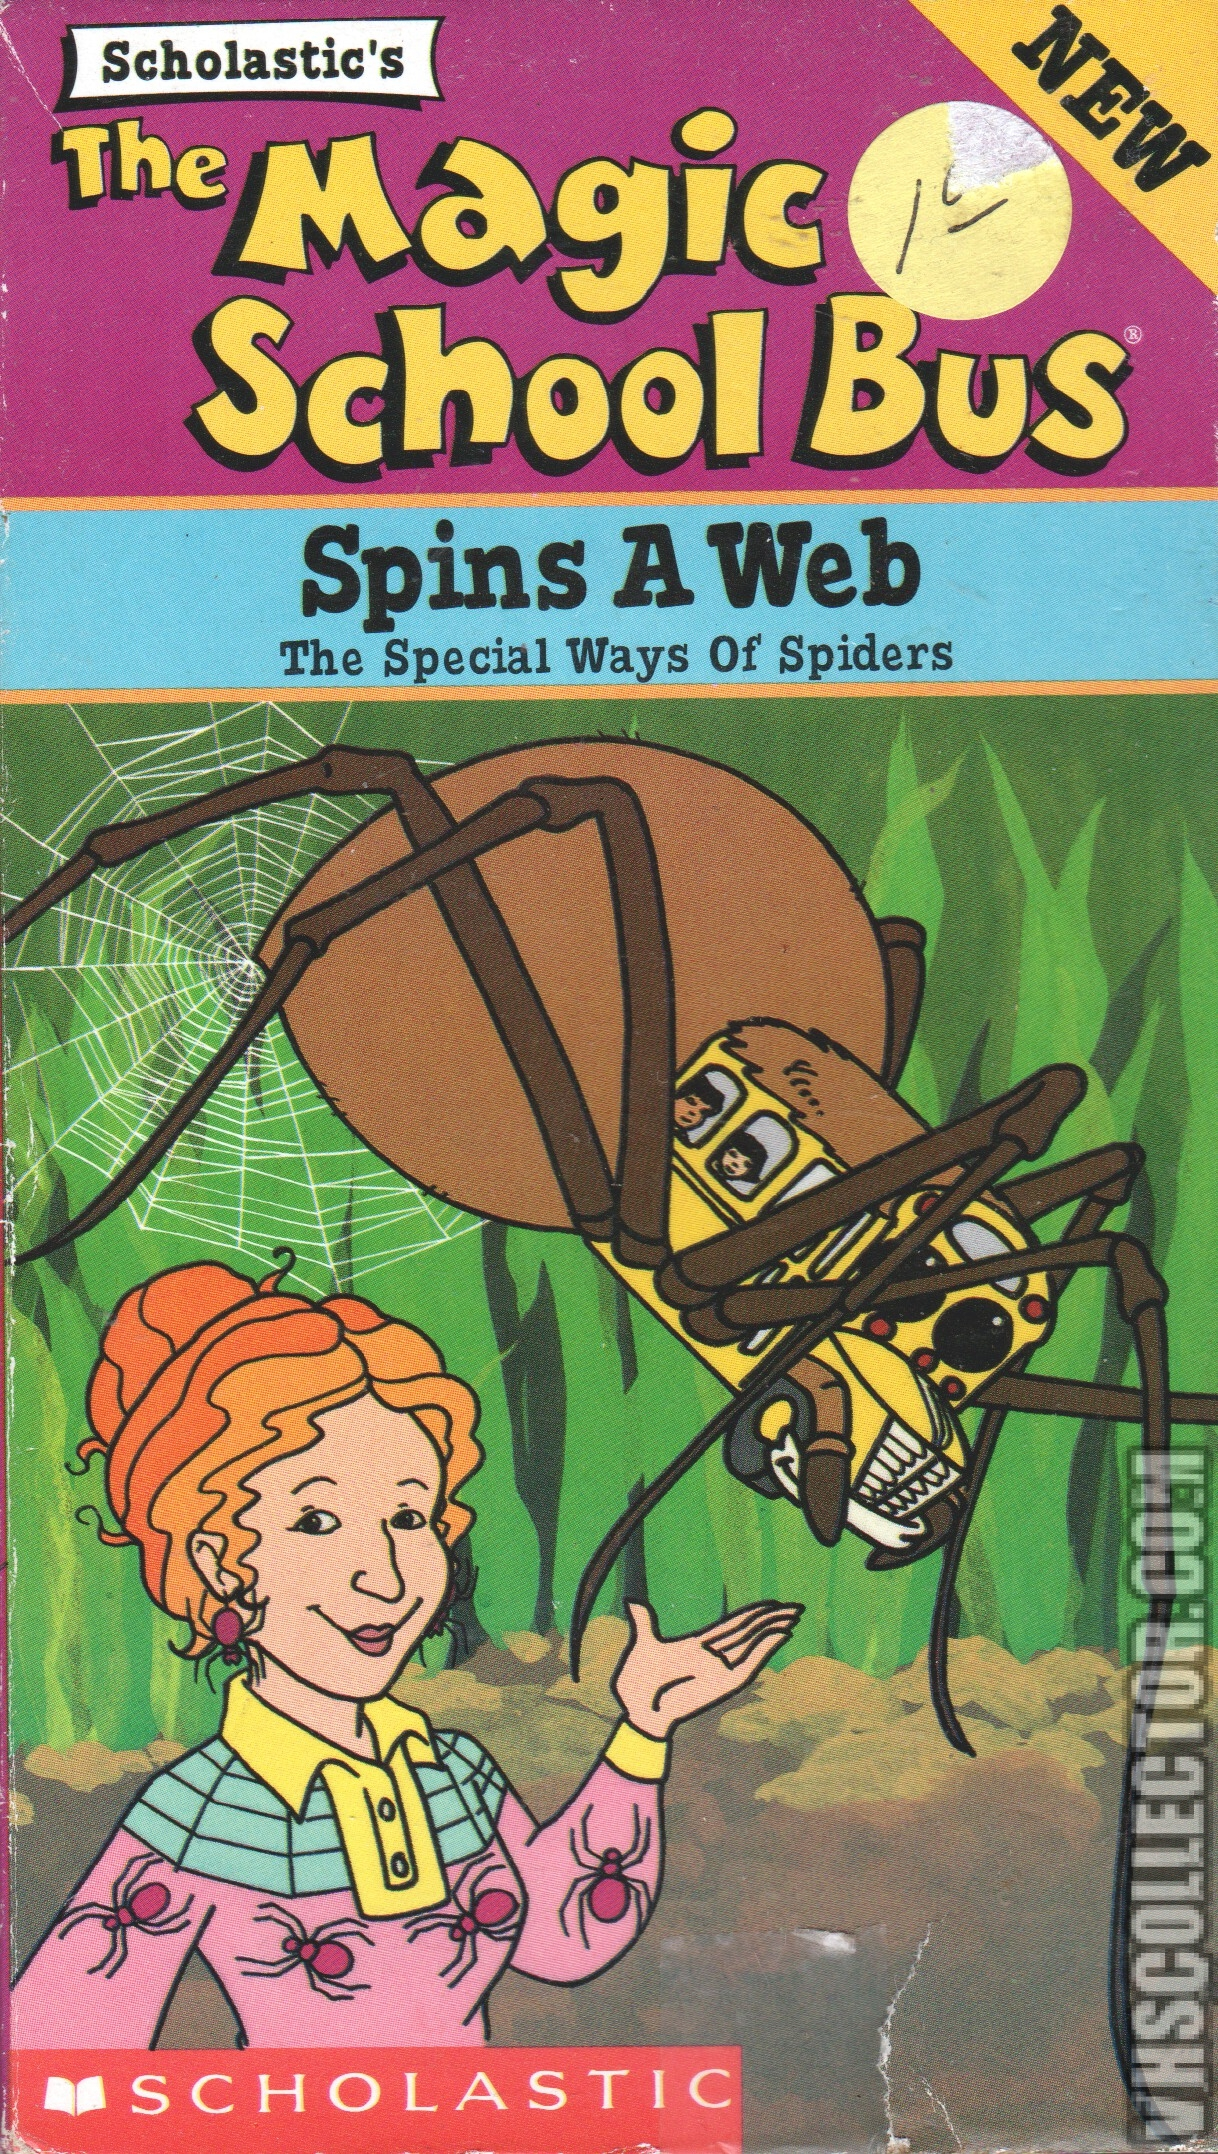 The Magic School Bus Spins A Web